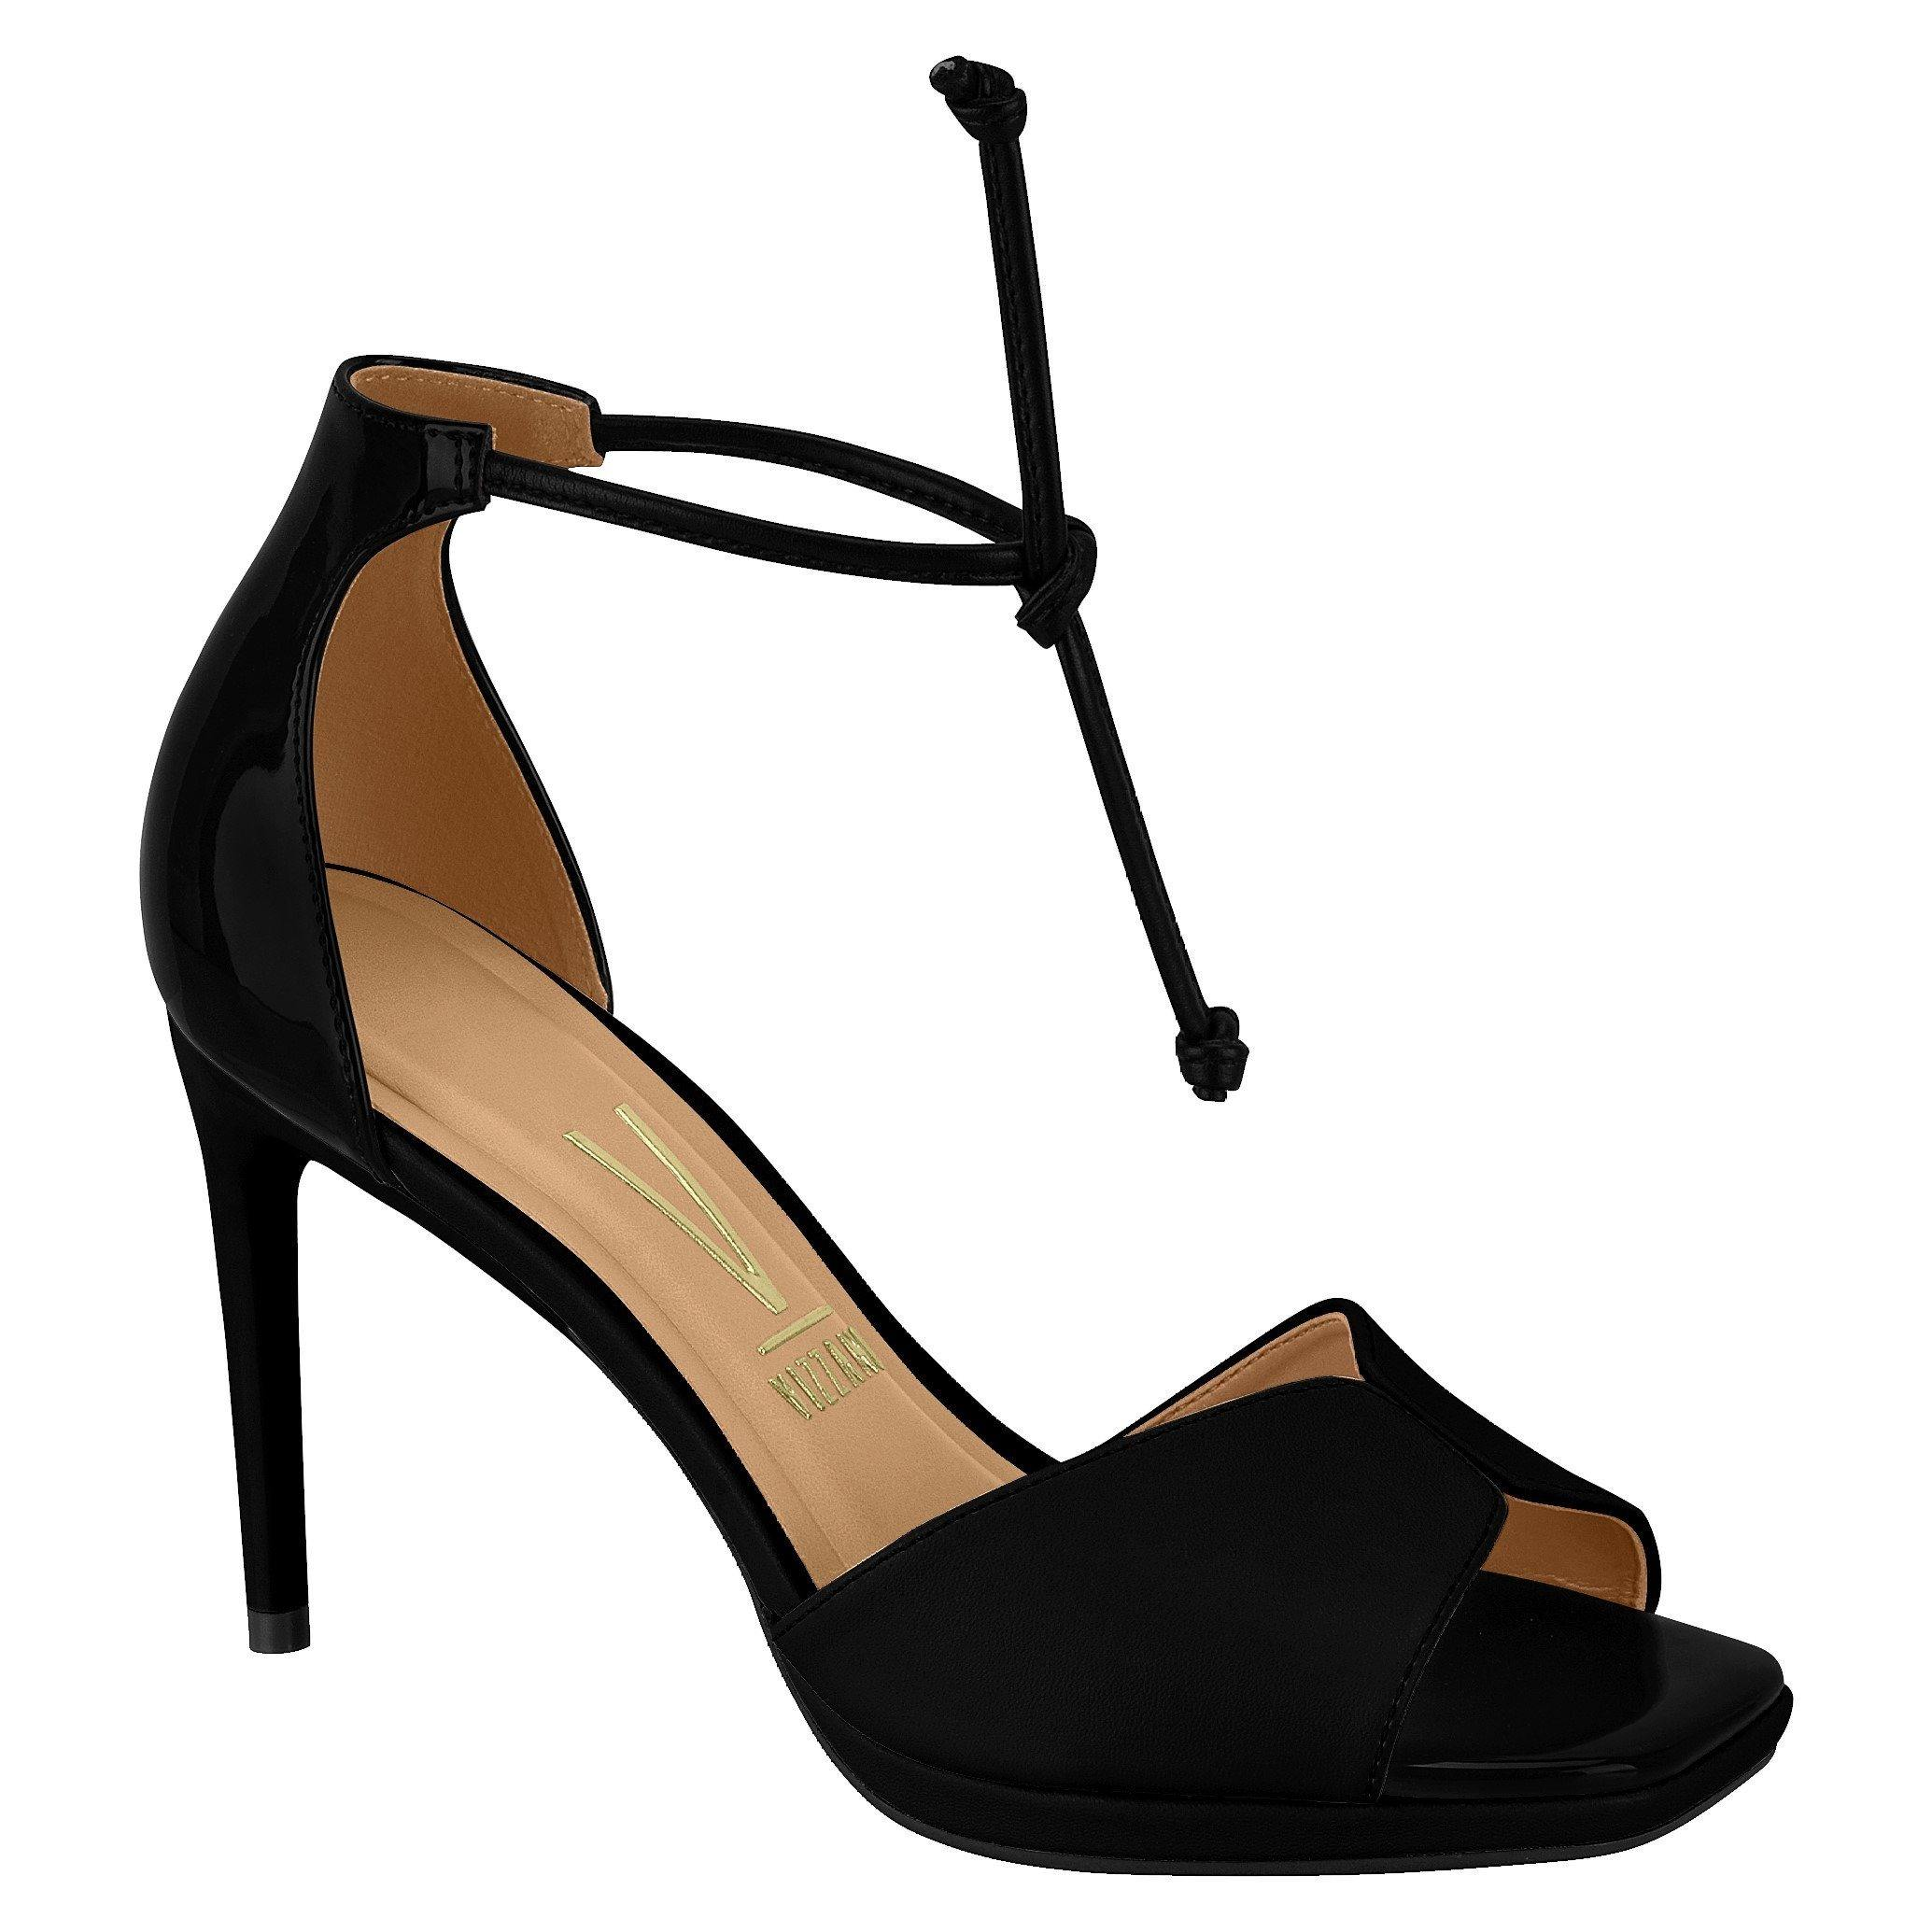 Vizzano 6432-106 High Heel Tie-up Stiletto Sandal in Black